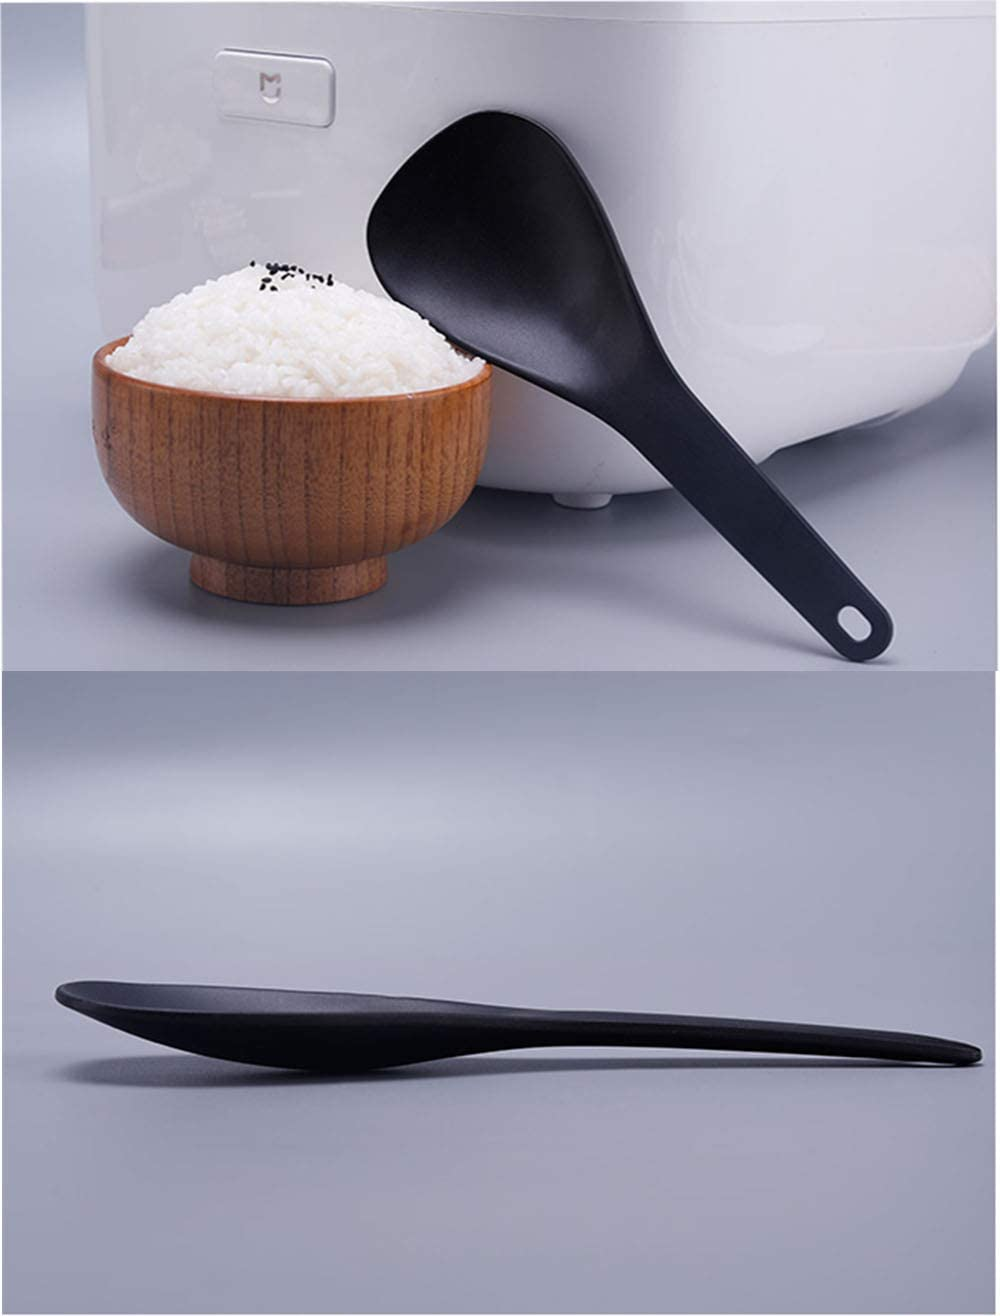 ORYOUGO 2 Pack Rice Paddle Non-sticky No Scratch Table Rice Spoon Rice Cooker Scoop Kitchen Tool,Green/&Pink